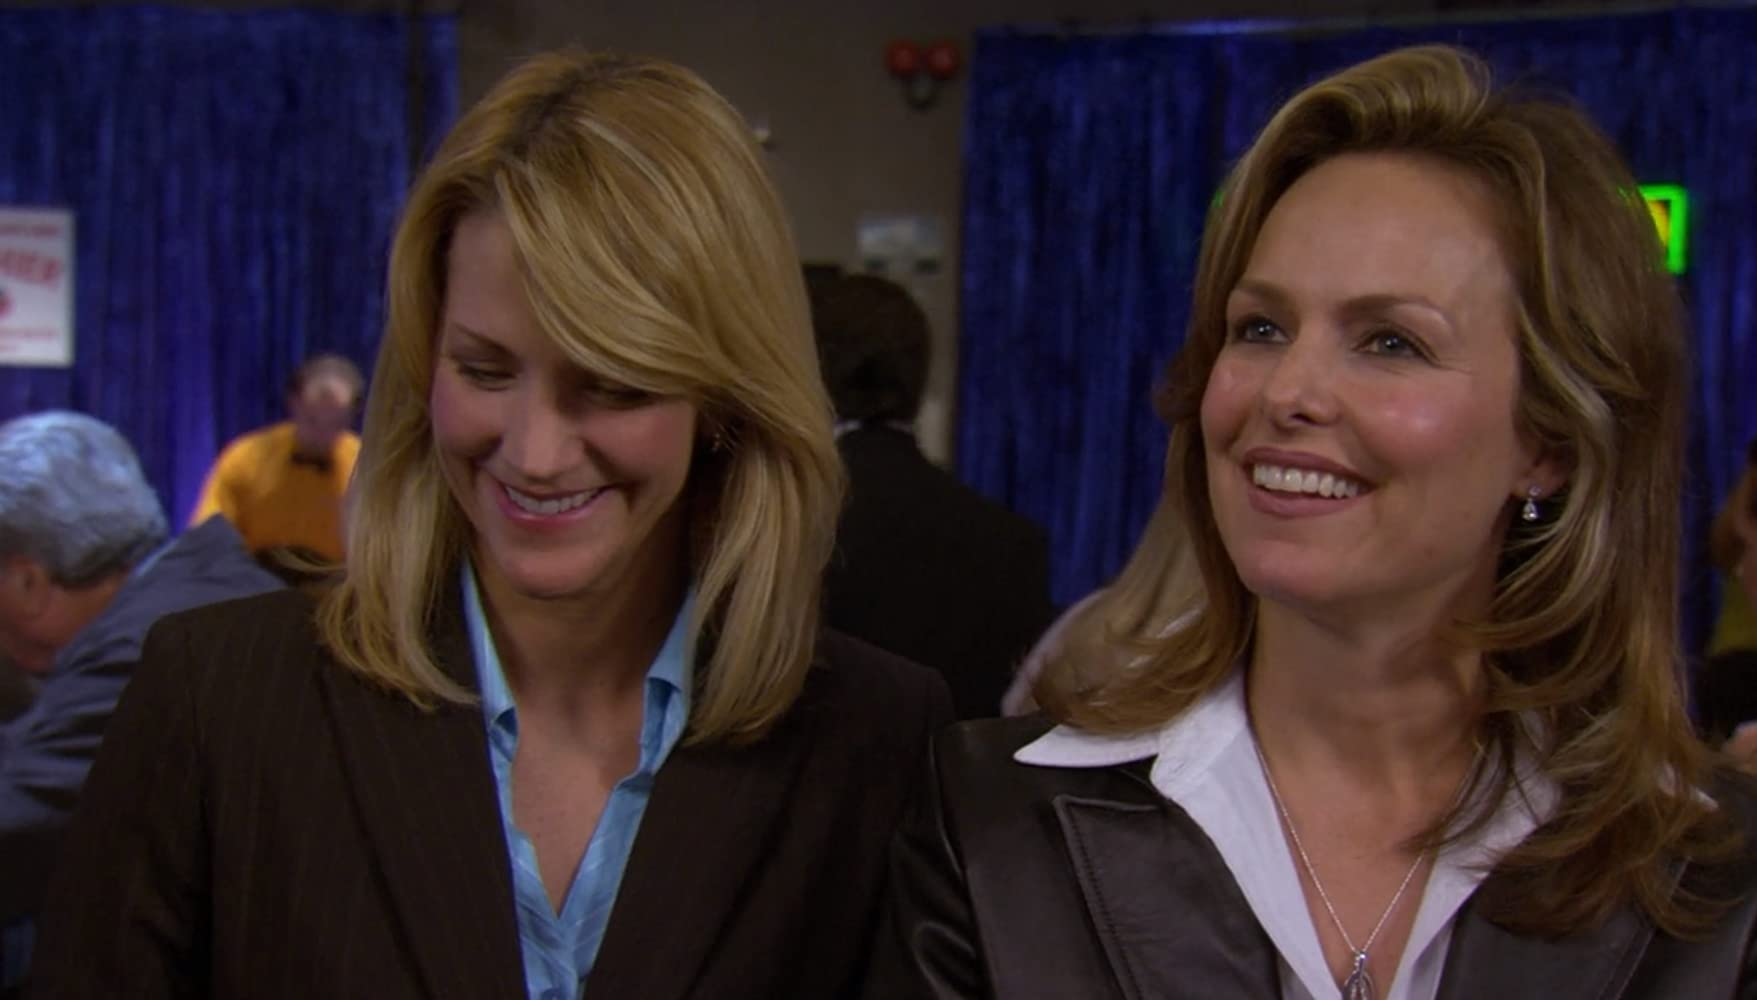 Nancy Carell role in the office